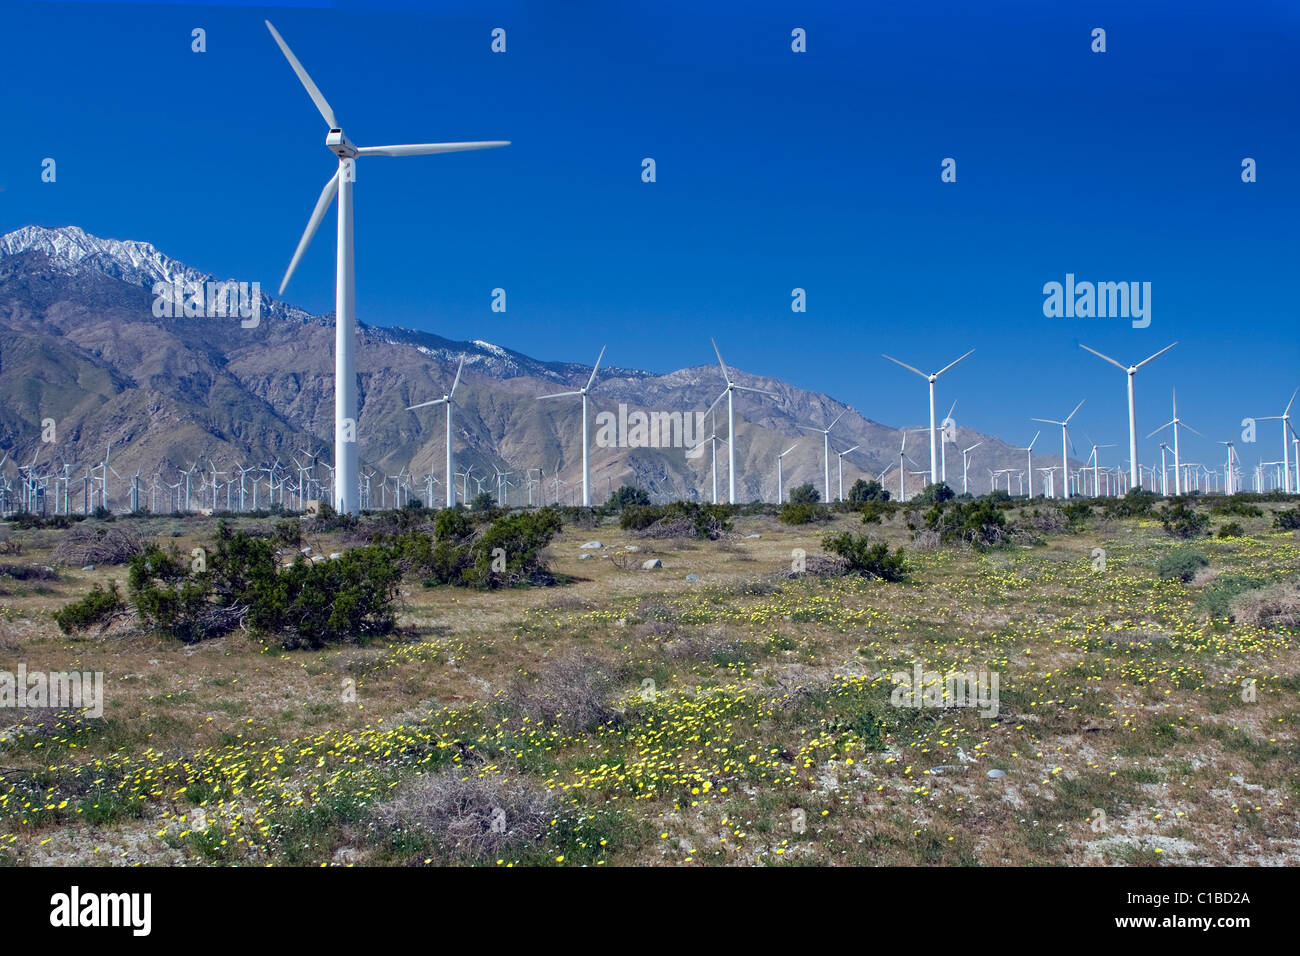 A wind farm in the desert of California. - Stock Image